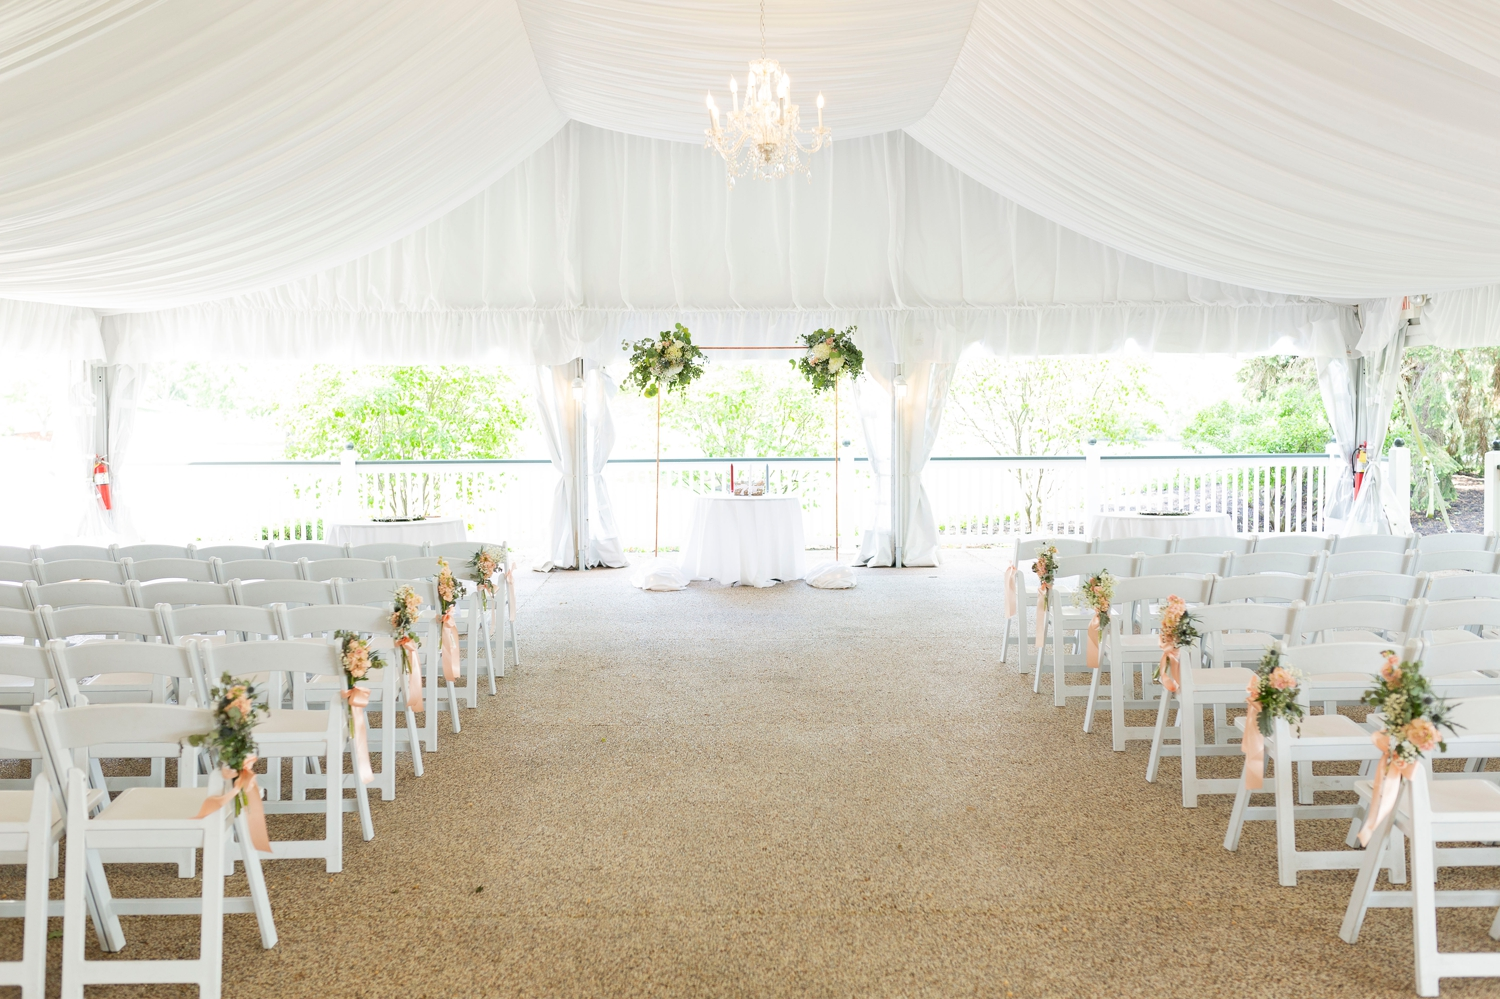 The lakes golf and country club, Westerville ohio, Westerville wedding, dublin wedding, columbus wedding photography, vow renewal, tent wedding, country club wedding, golf course wedding, christian wedding, wedding ceremony, wedding details